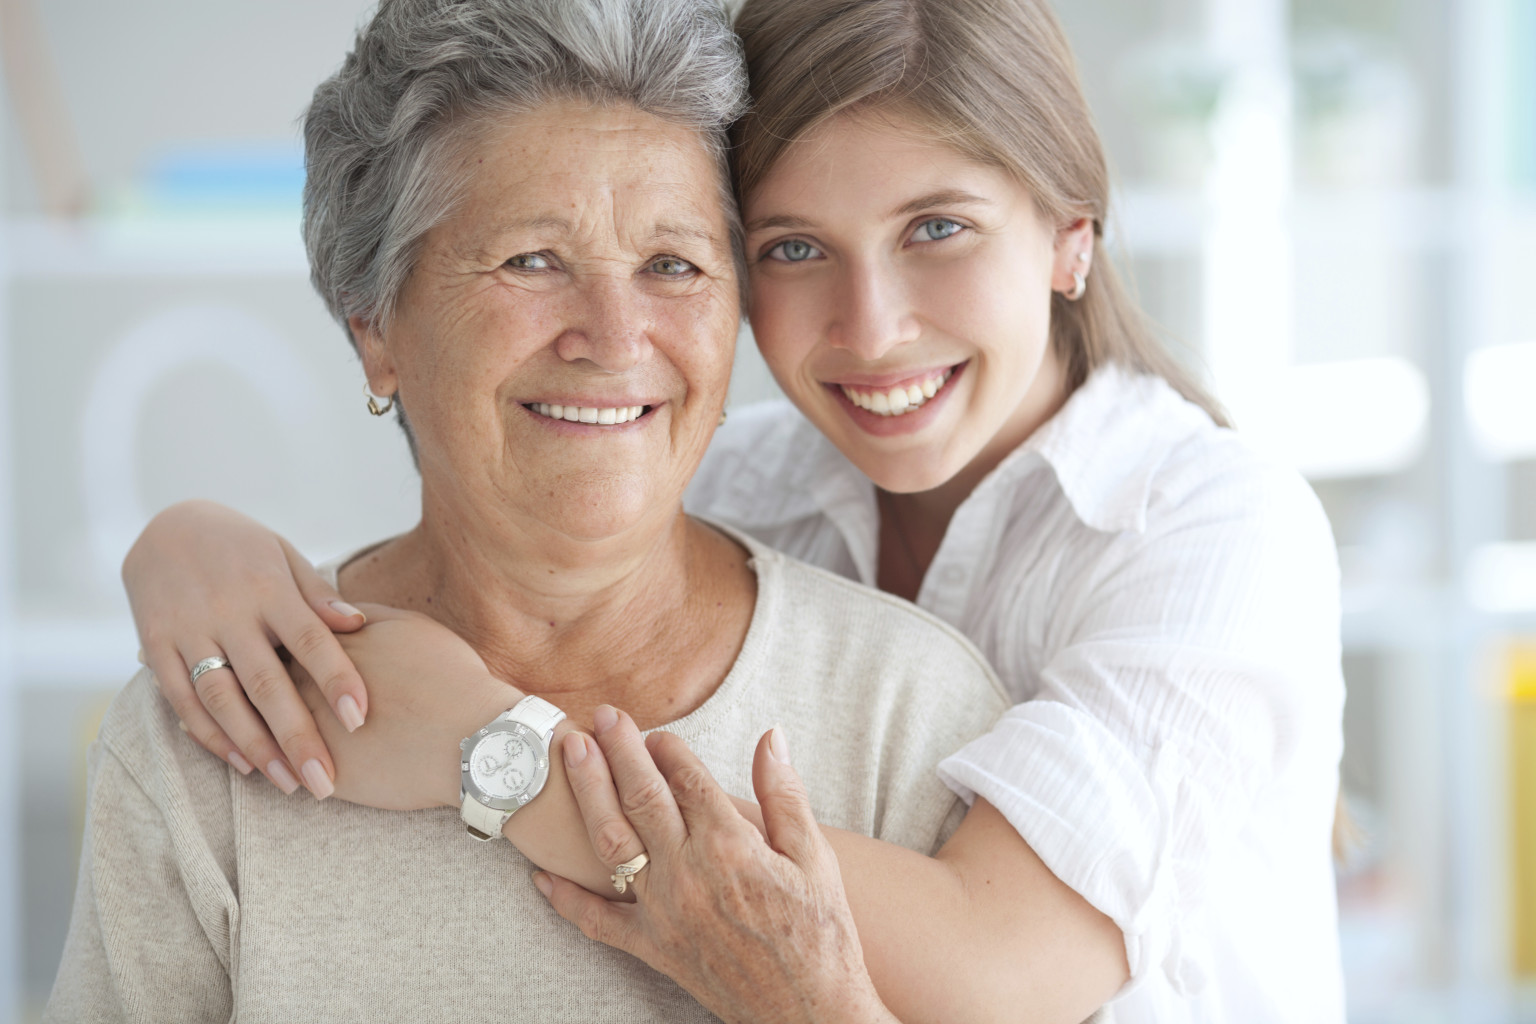 mother and grown up daughter photo ideas - My Grandmother and I